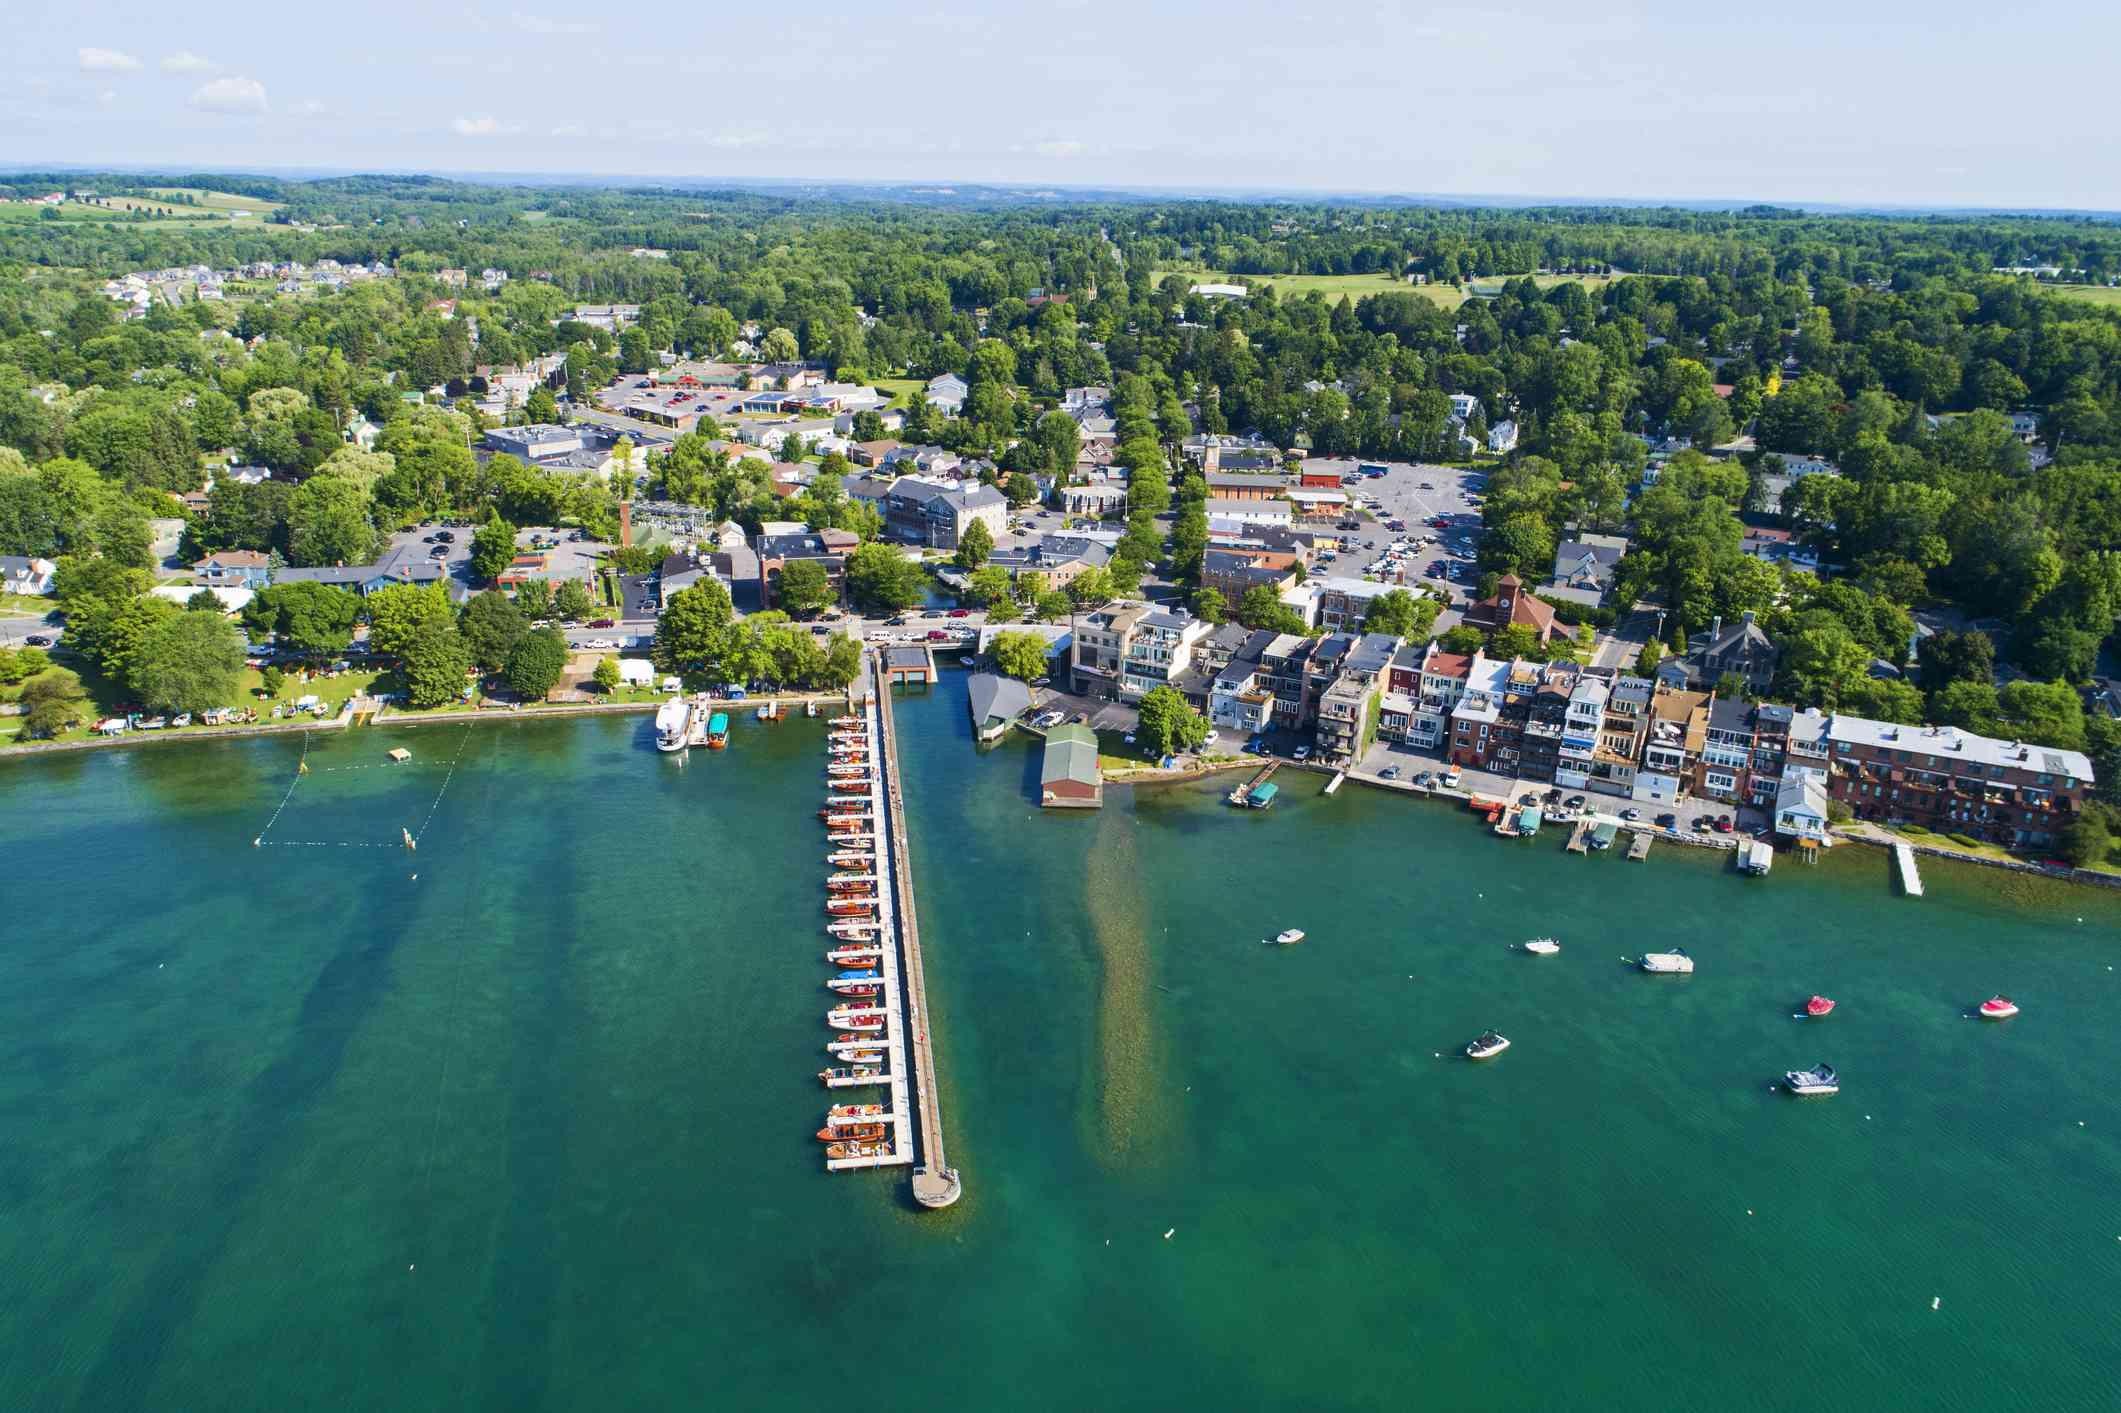 Area view of a harbor and buildings in the Finger Lakes town, Skaneateles Lake